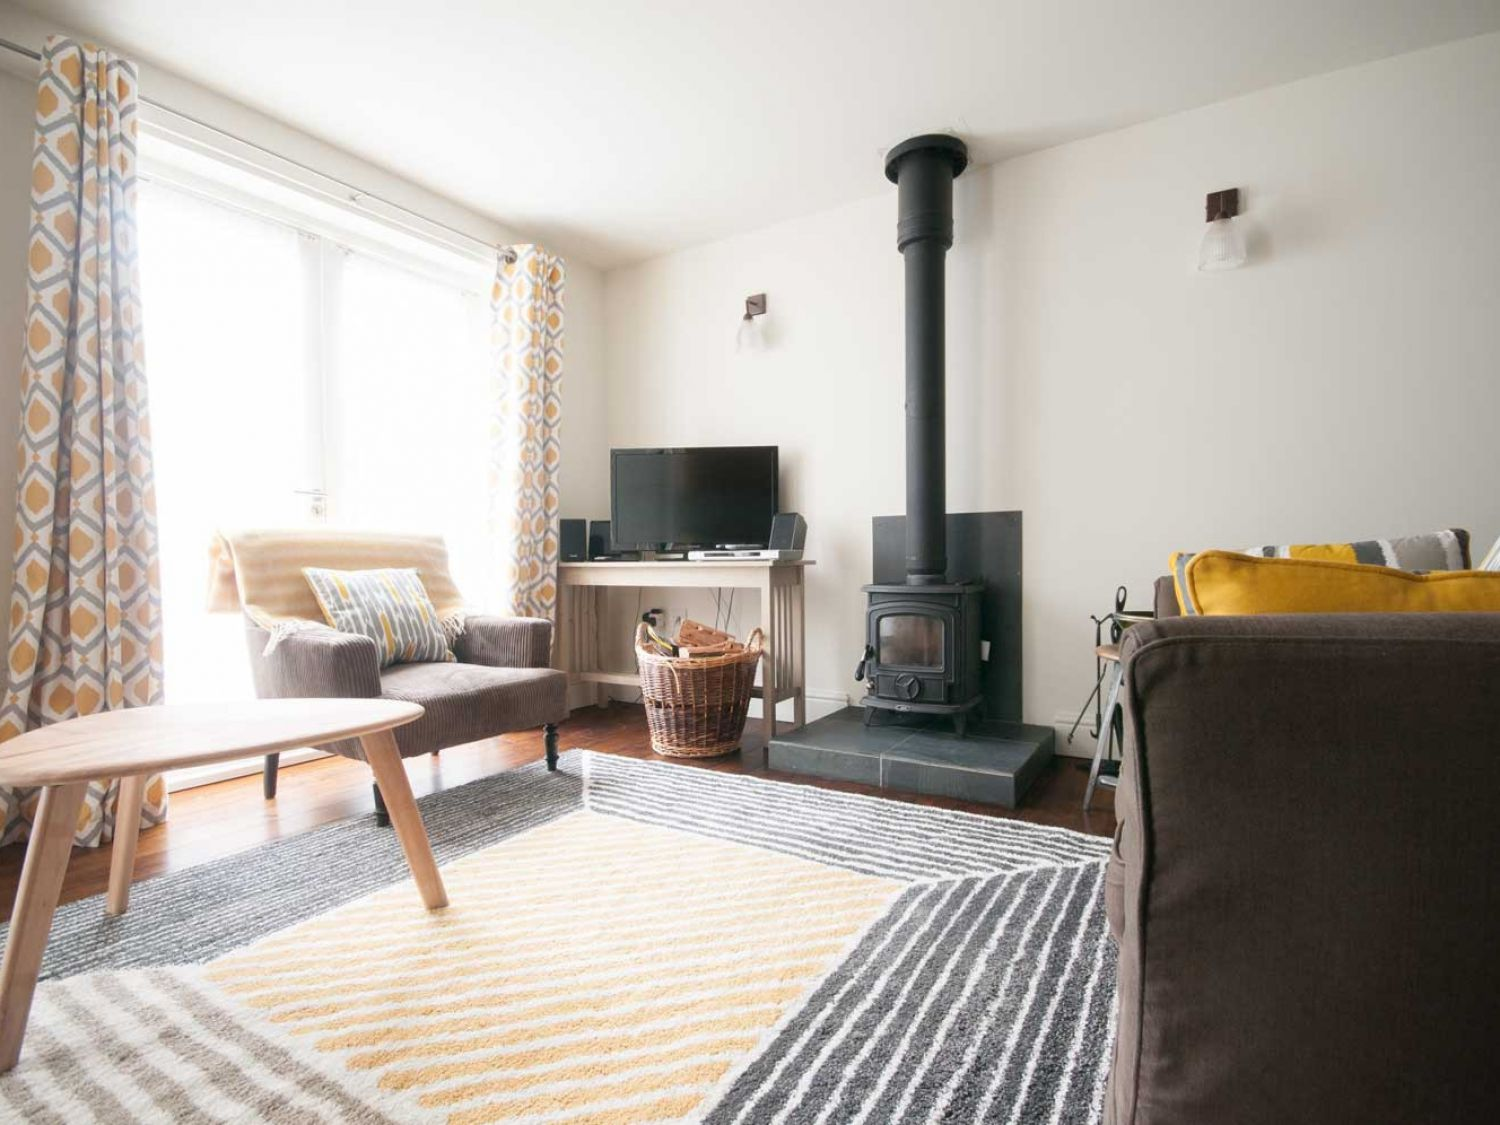 No 1 The Hinges in Crantock - sleeps 2 people